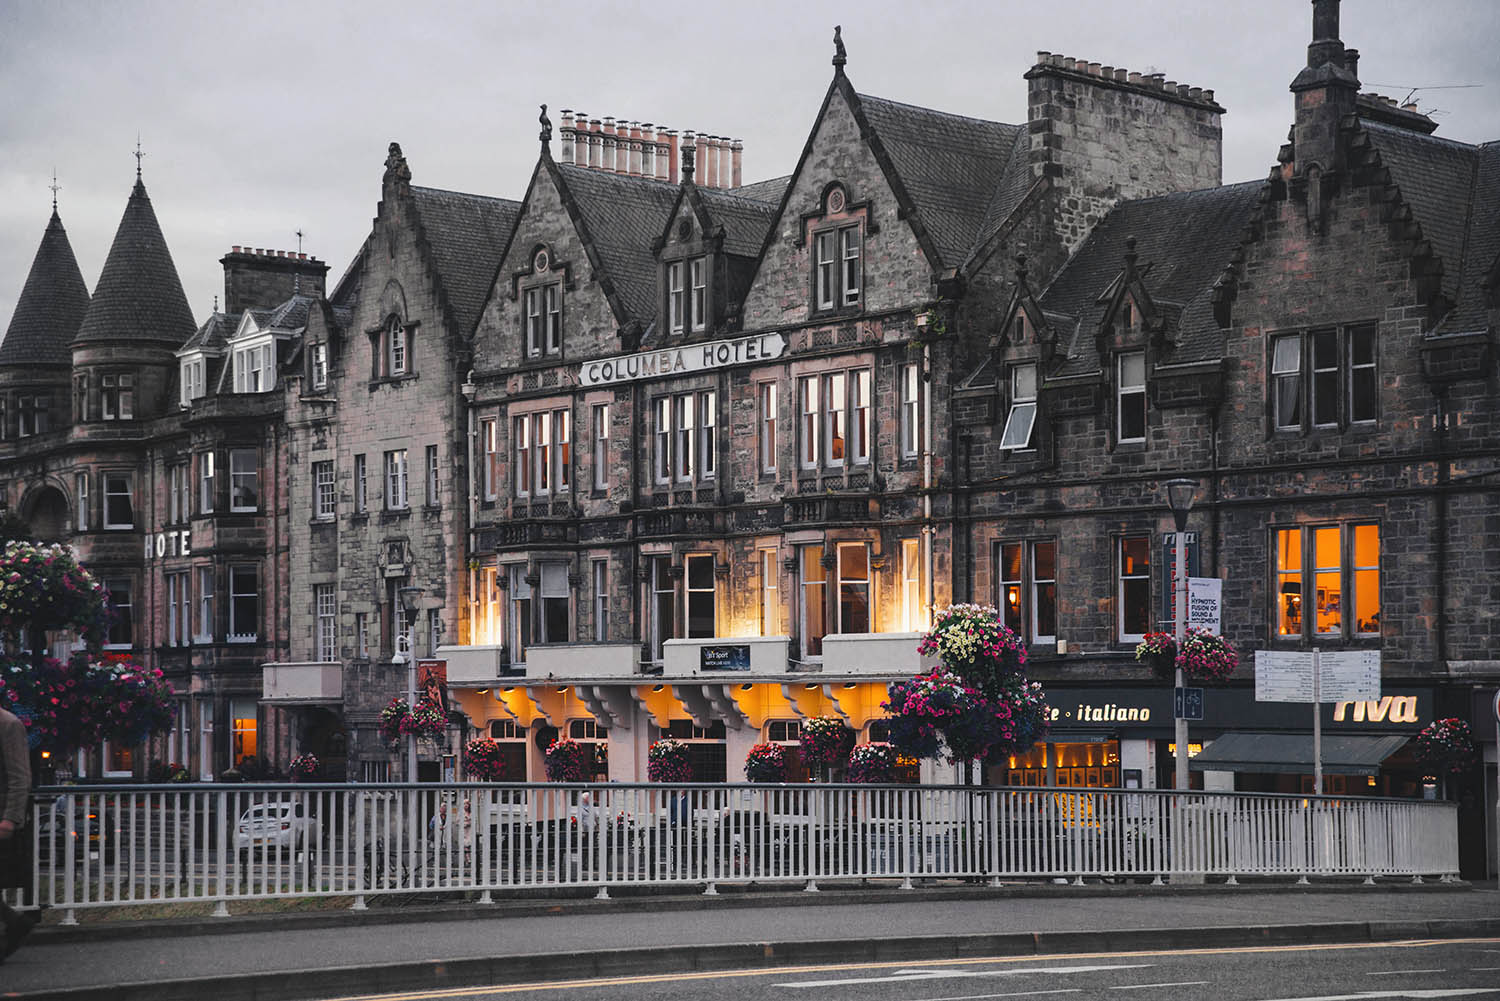 Inverness, Scotland - Columbia Hotel